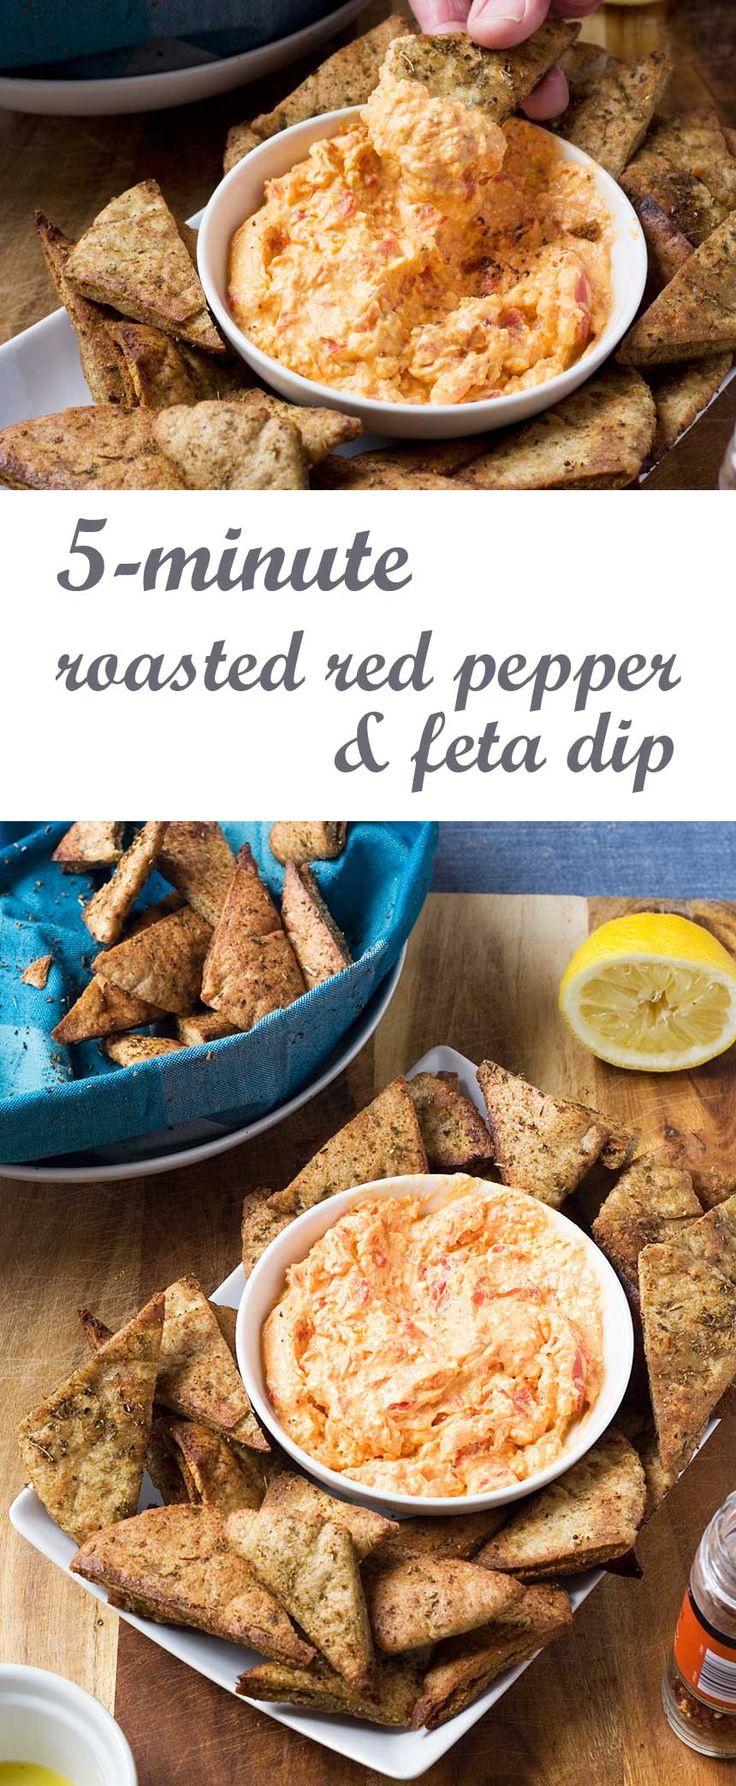 5-minute roasted red pepper and feta dip                                                                                                                                                                                 More